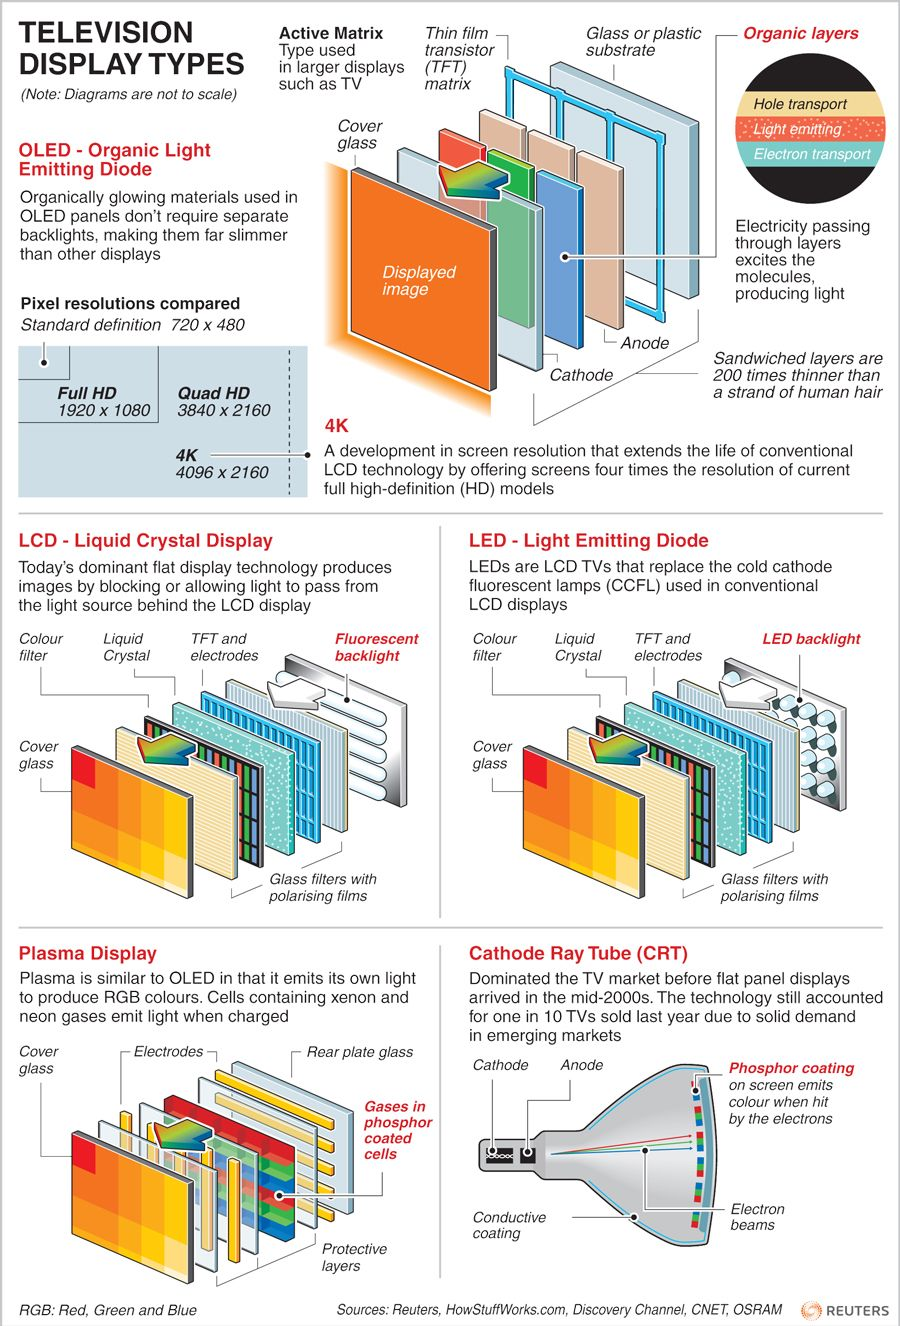 Television Display Types How It Works For Oled Lcd Led Plasma Wiring Diagram And Crt Tvs Via Reuters April 2012